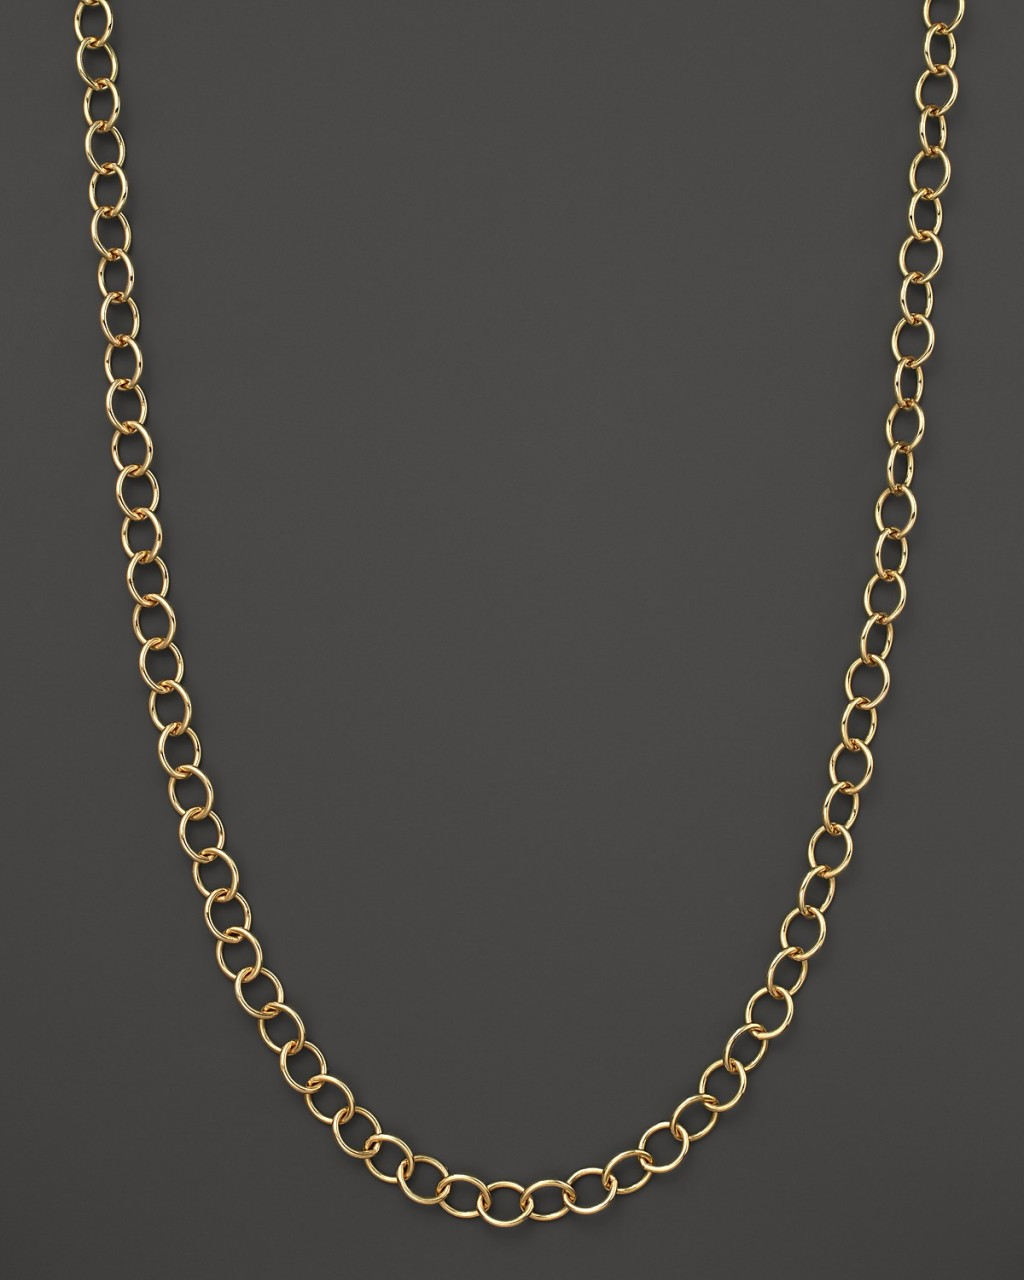 9 Stunning Temple St Clair Necklace in Jewelry